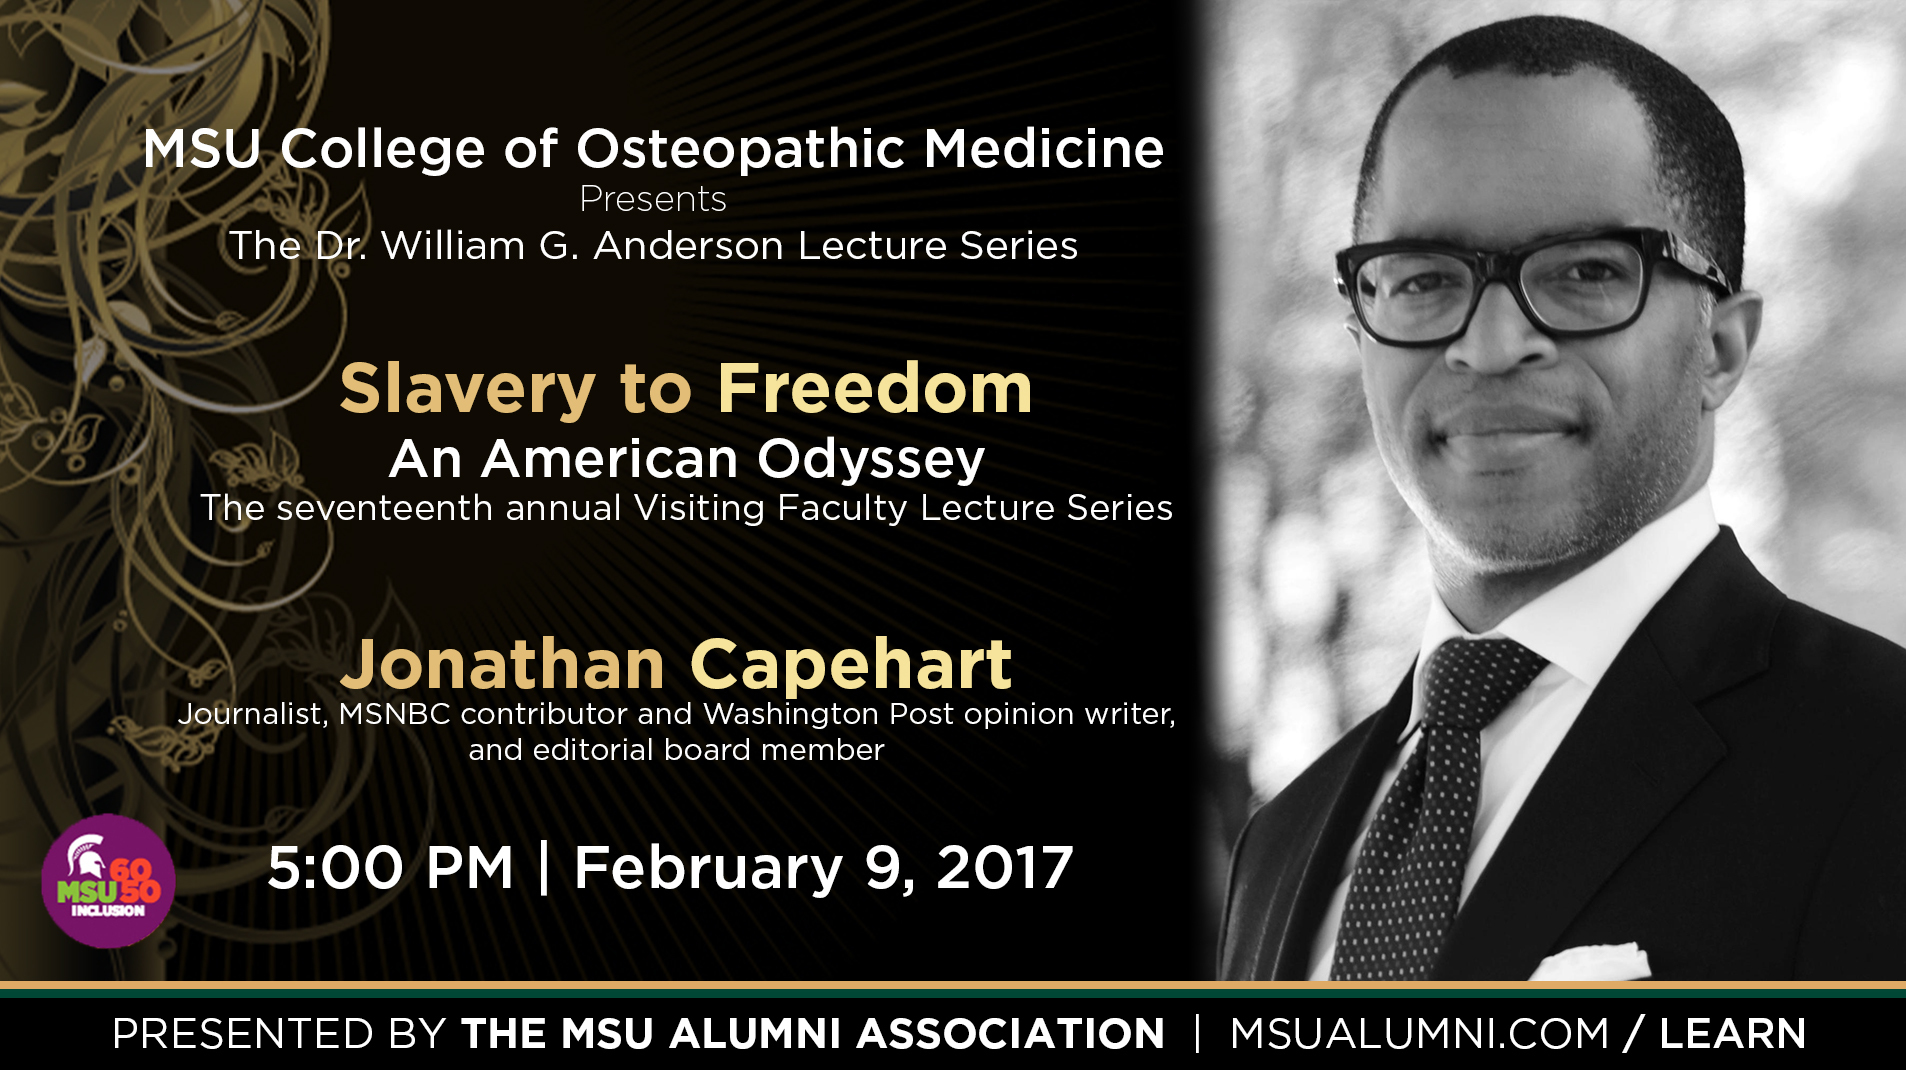 livestream cover image for Slavery to Freedom | Jonathan Capehart